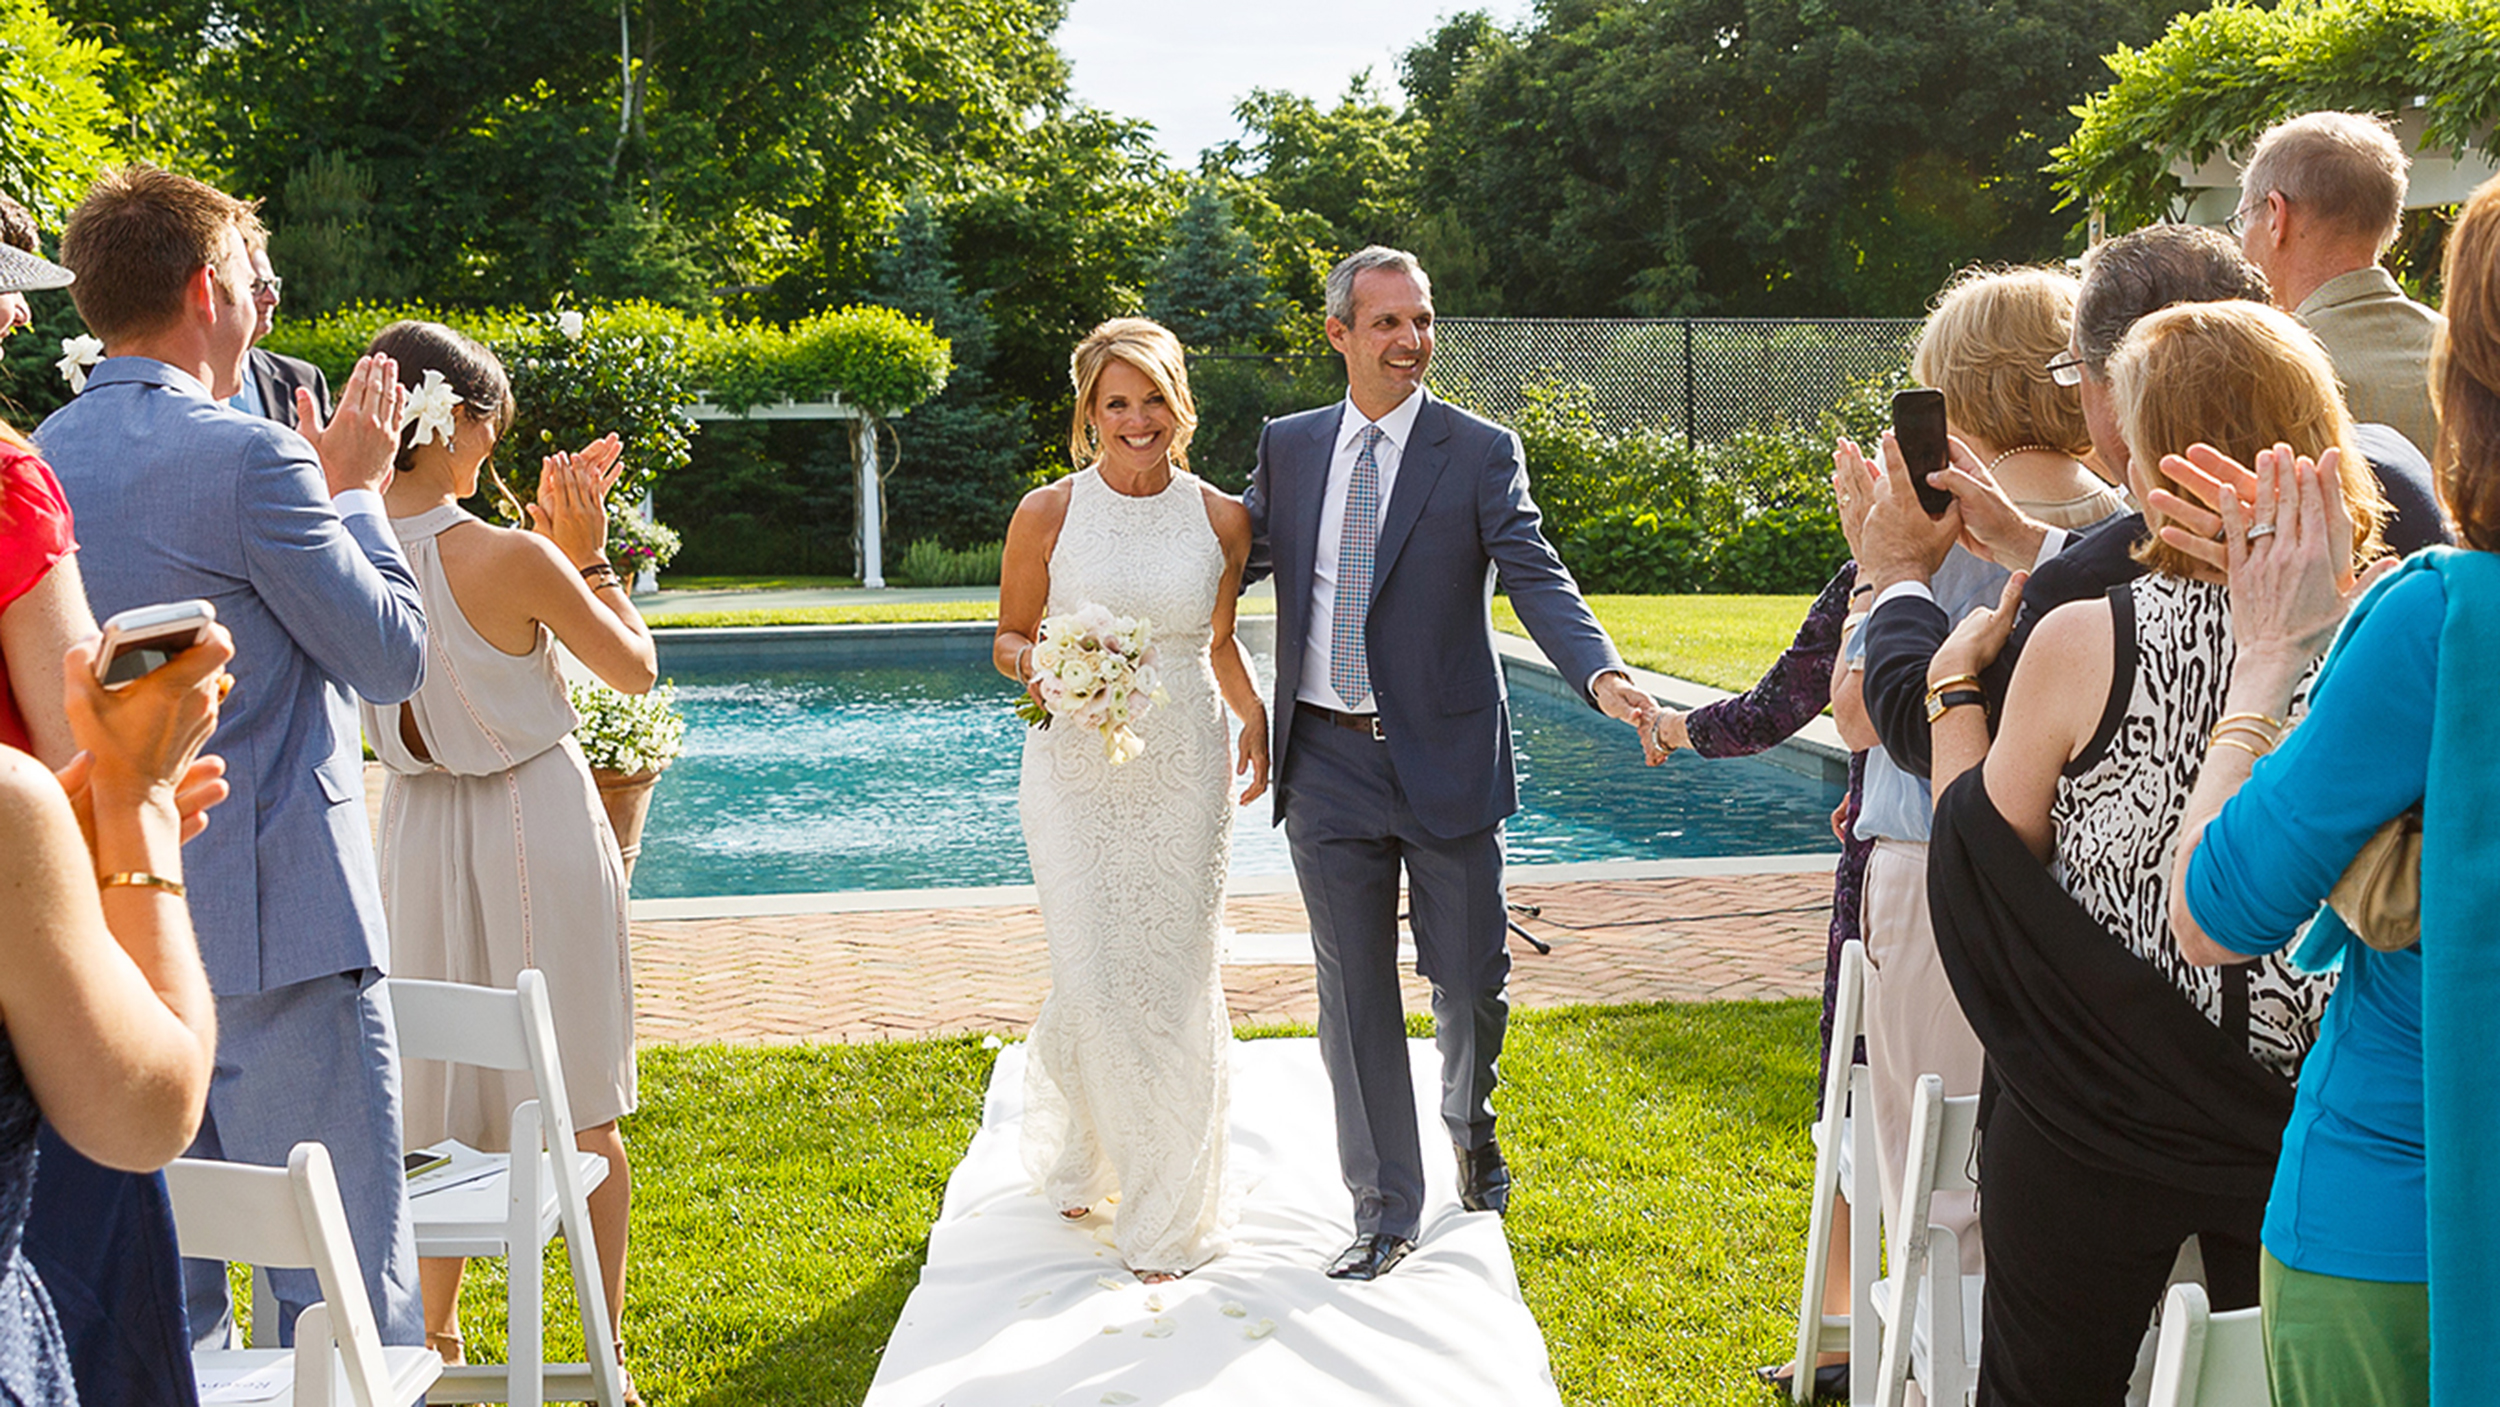 katie couric shares beautiful backyard wedding pictures with today